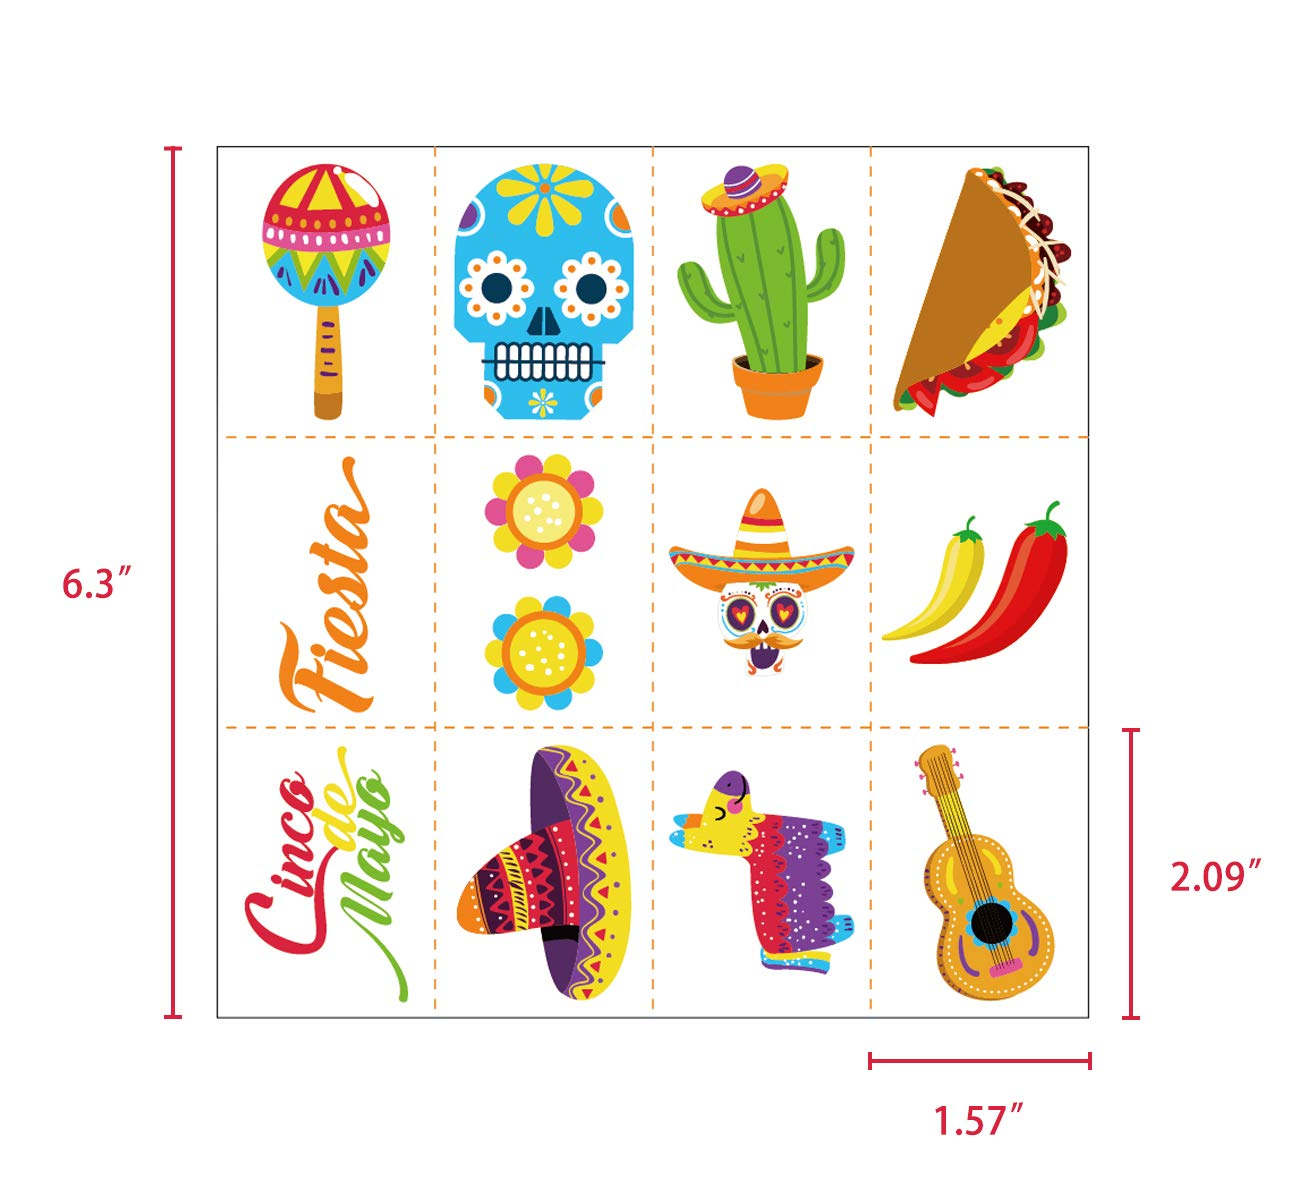 Cinco de Mayo Fiesta Tattoos Stickers – Mexican Party Favors Supplies Decorations by Your Little Lovely (Image #2)